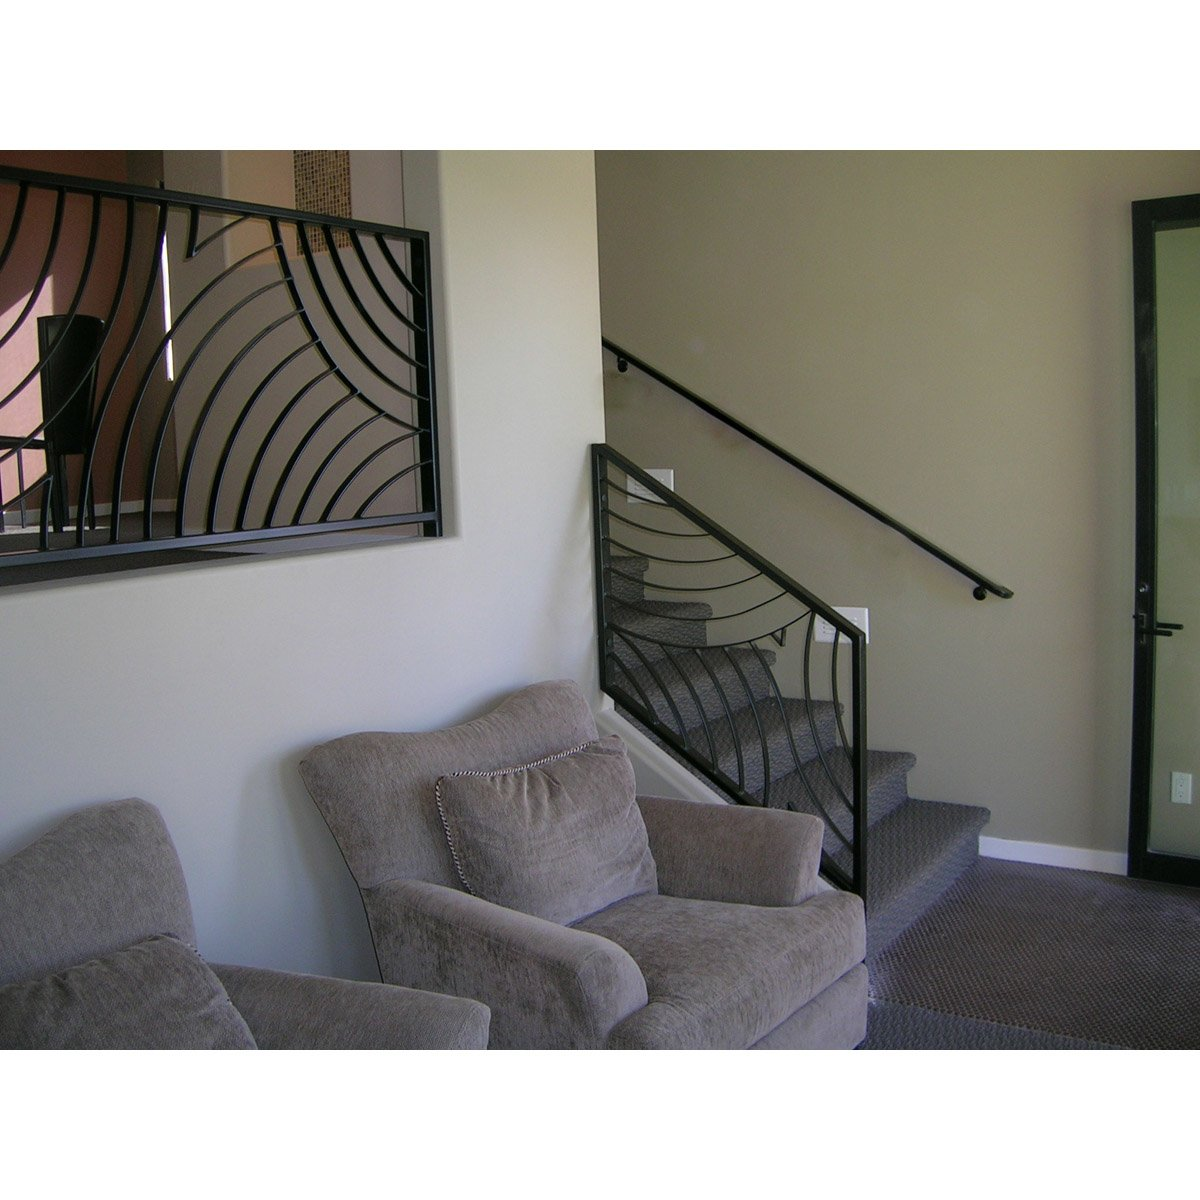 Custom decorative railing cutting edge metals inc for Custom decor inc